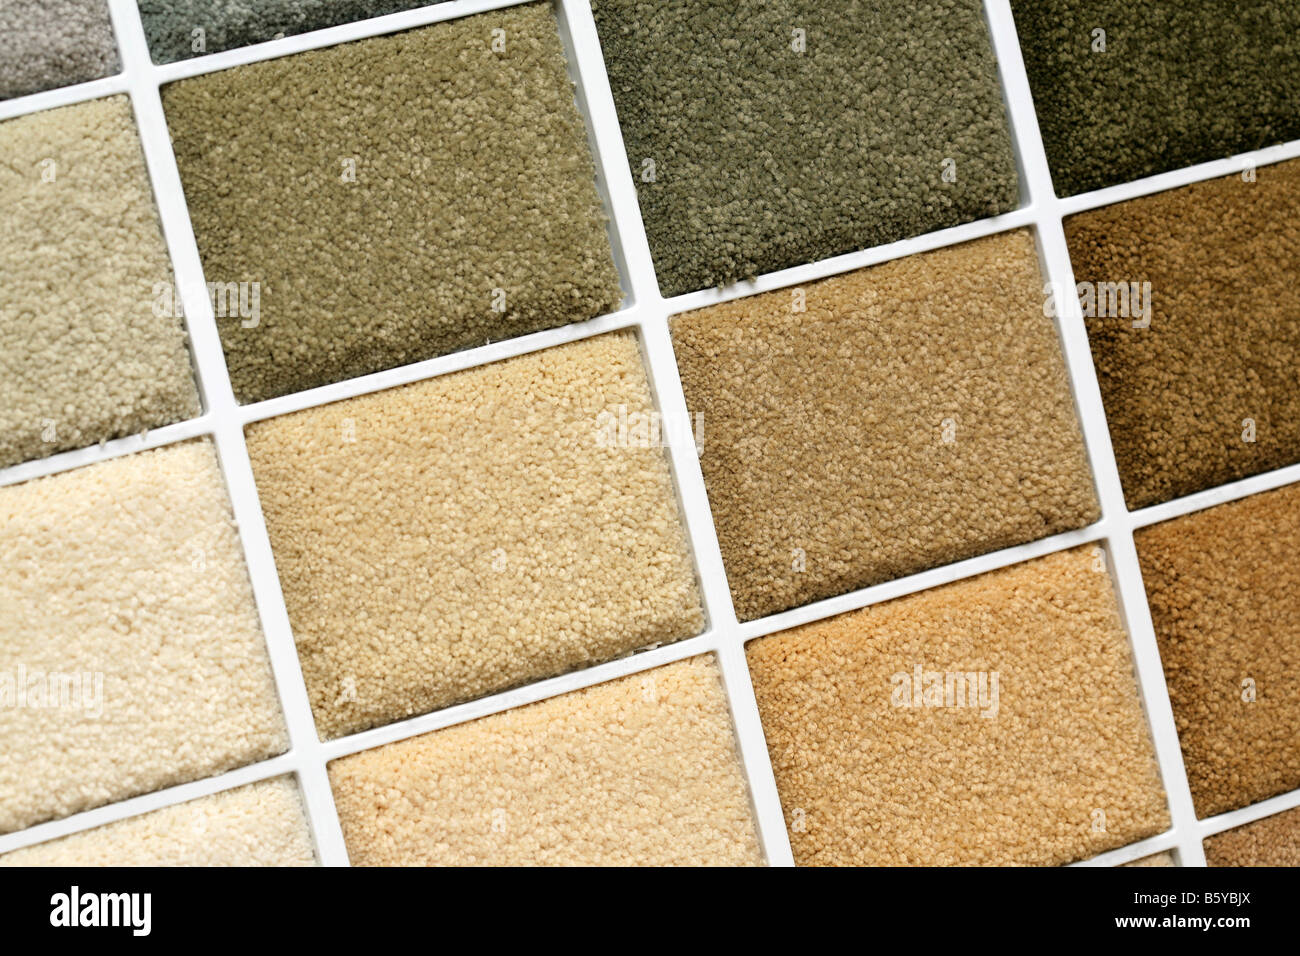 Sample Carpet Display Stock Photos & Sample Carpet Display Stock ...